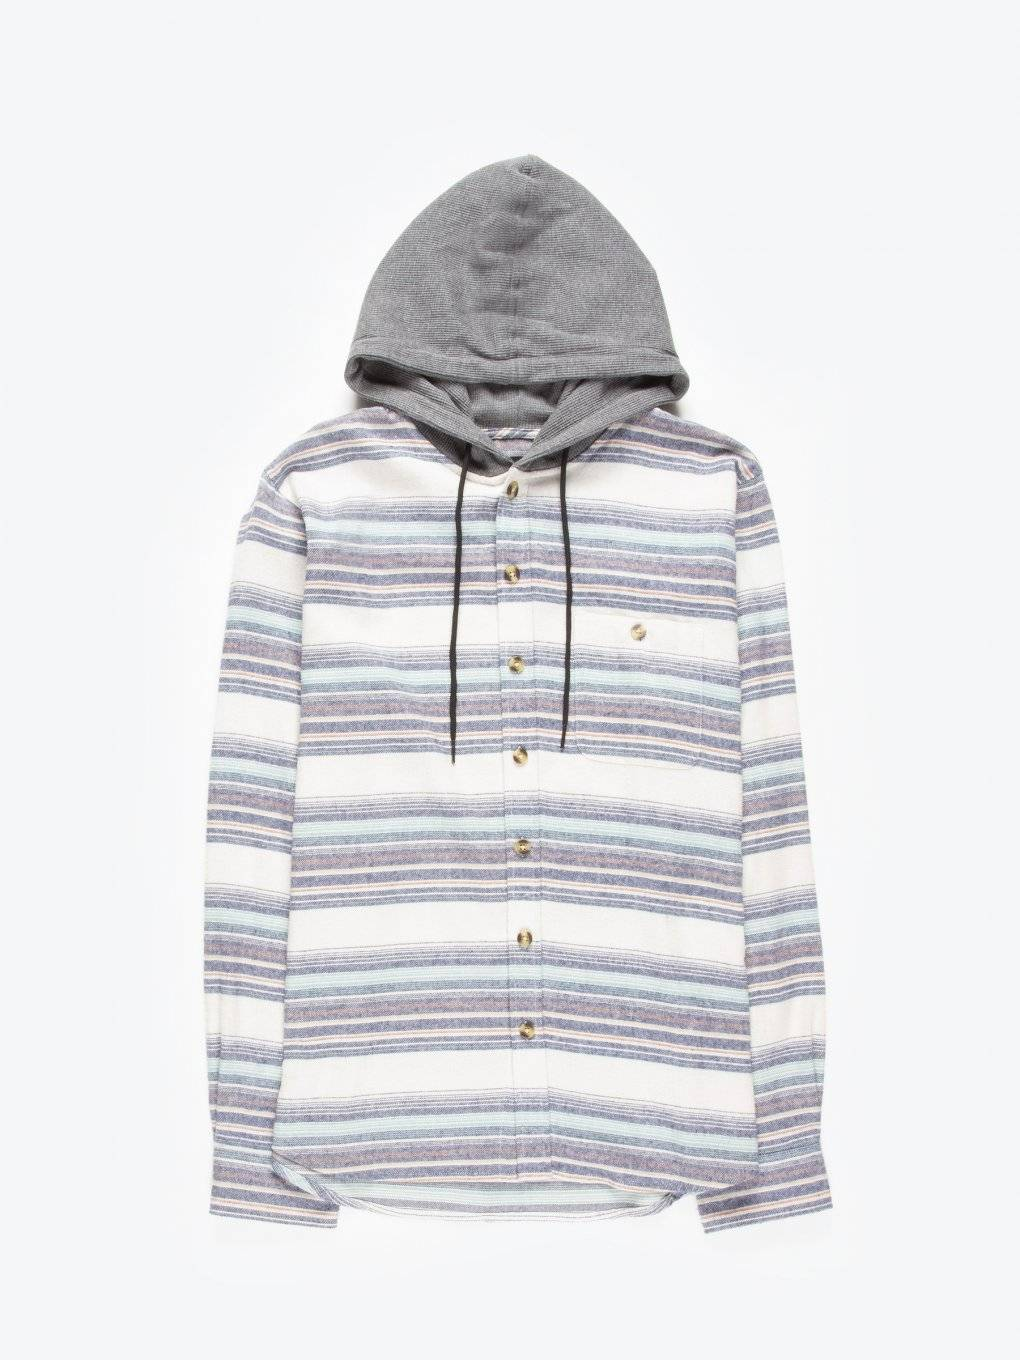 Striped shirt with hood